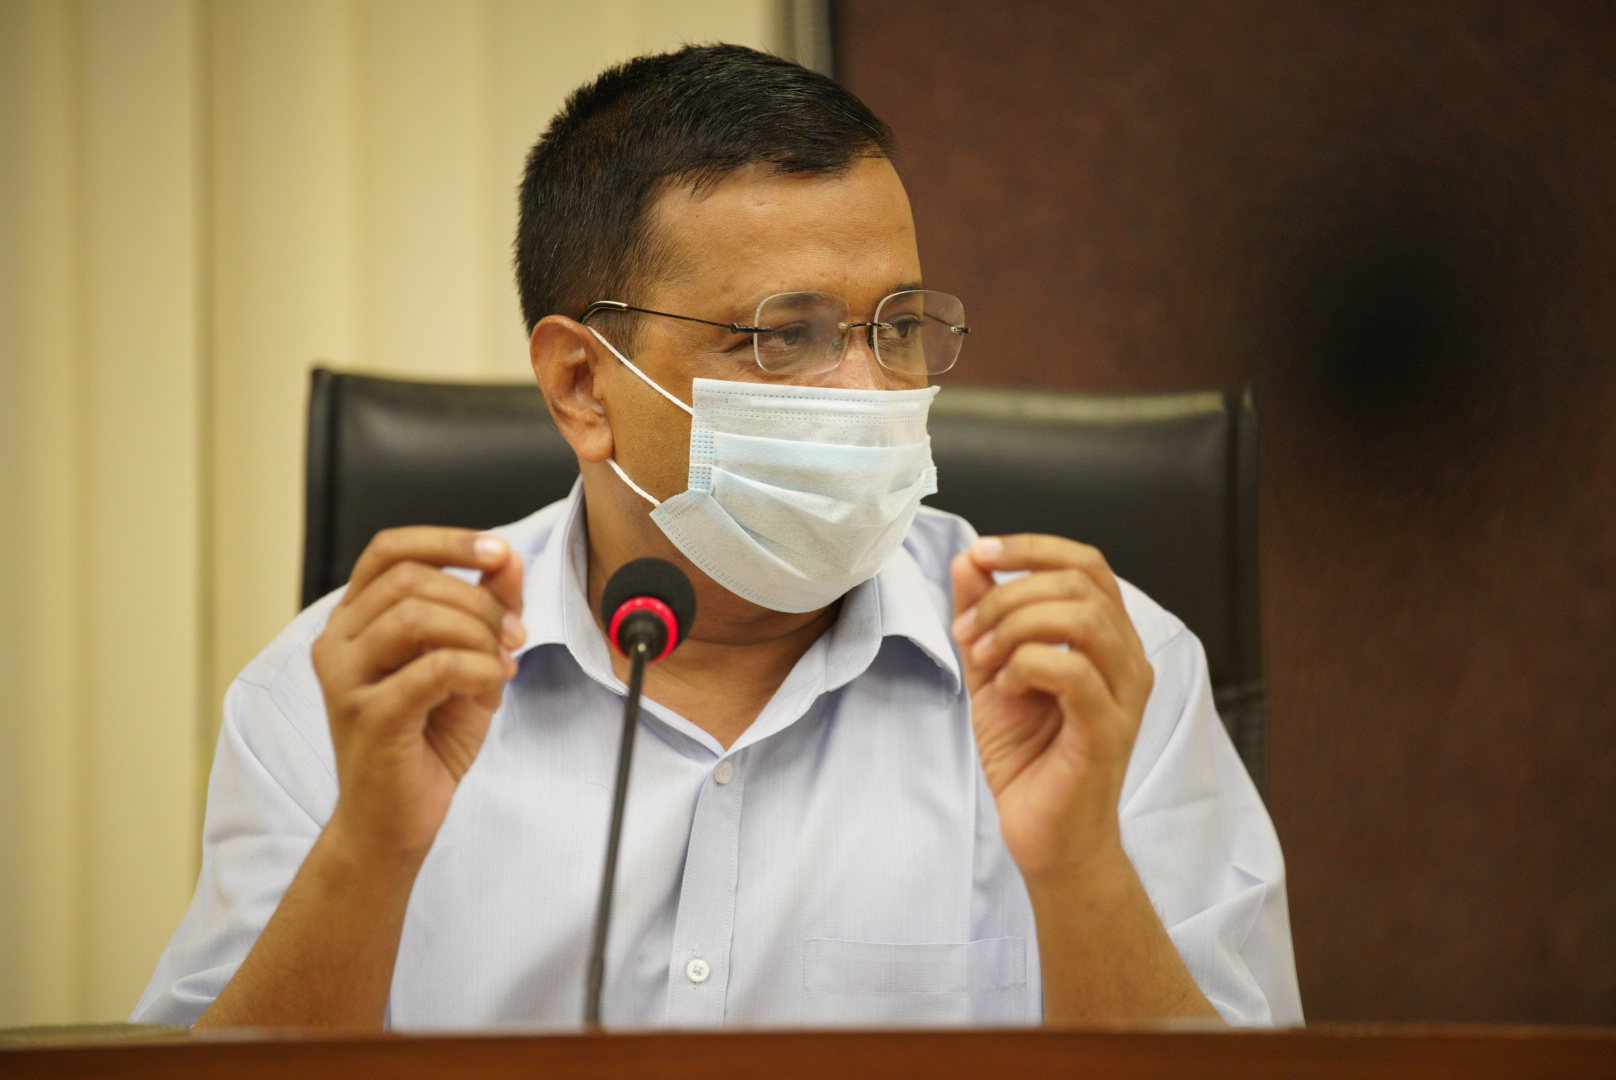 Kejriwal's comments were met with strong criticism by both the Indian and Singapore governments